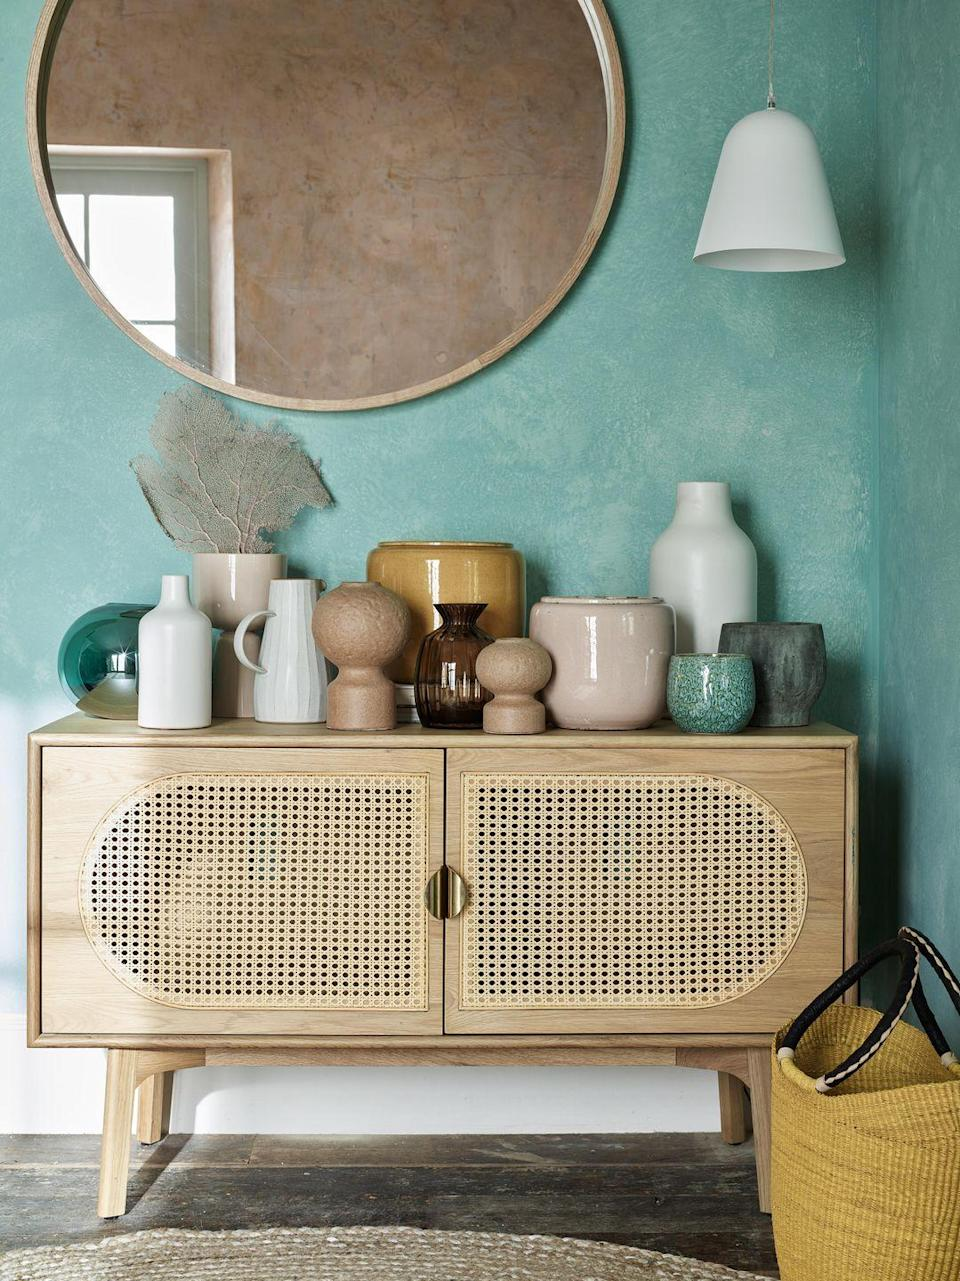 """<p>'The rattan trend isn't going anywhere, and we're going to see much more of it in 2021 as we seek interest and tactility in every finish around the home,' says Wil Law, Partner & Home Design Stylist. 'It can look earthy and humble, at peace with any Scandi, airy room, or sleek and sophisticated, especially when the pale rattan meets a black painted frame.'<br></p><p><a class=""""link rapid-noclick-resp"""" href=""""https://go.redirectingat.com?id=127X1599956&url=https%3A%2F%2Fwww.johnlewis.com%2Fbrowse%2Fhome-garden%2Fnew-in-home%2F_%2FN-7opk&sref=https%3A%2F%2Fwww.housebeautiful.com%2Fuk%2Flifestyle%2Fshopping%2Fg35369005%2Fjohn-lewis-partners-homeware-spring-summer%2F"""" rel=""""nofollow noopener"""" target=""""_blank"""" data-ylk=""""slk:SHOP NOW"""">SHOP NOW</a></p>"""